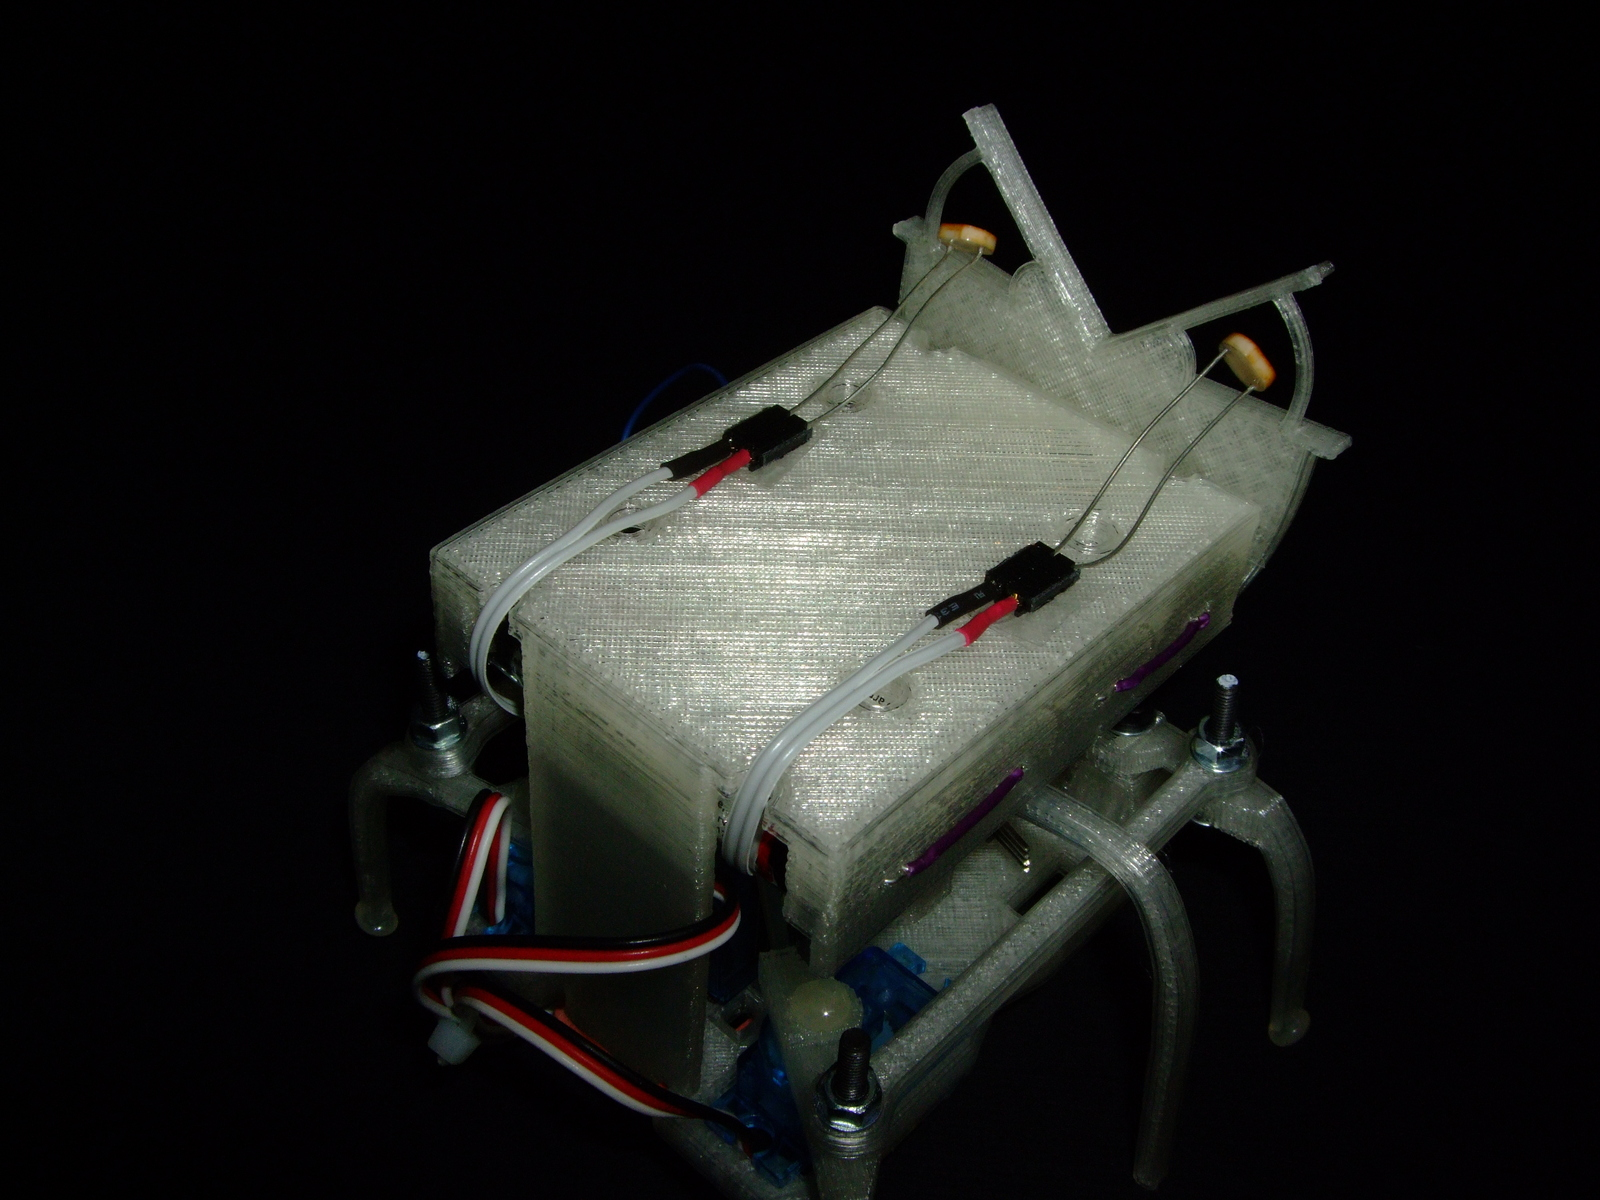 Picture of Hexapod As a Light Follower (thanks to 2 LDR)